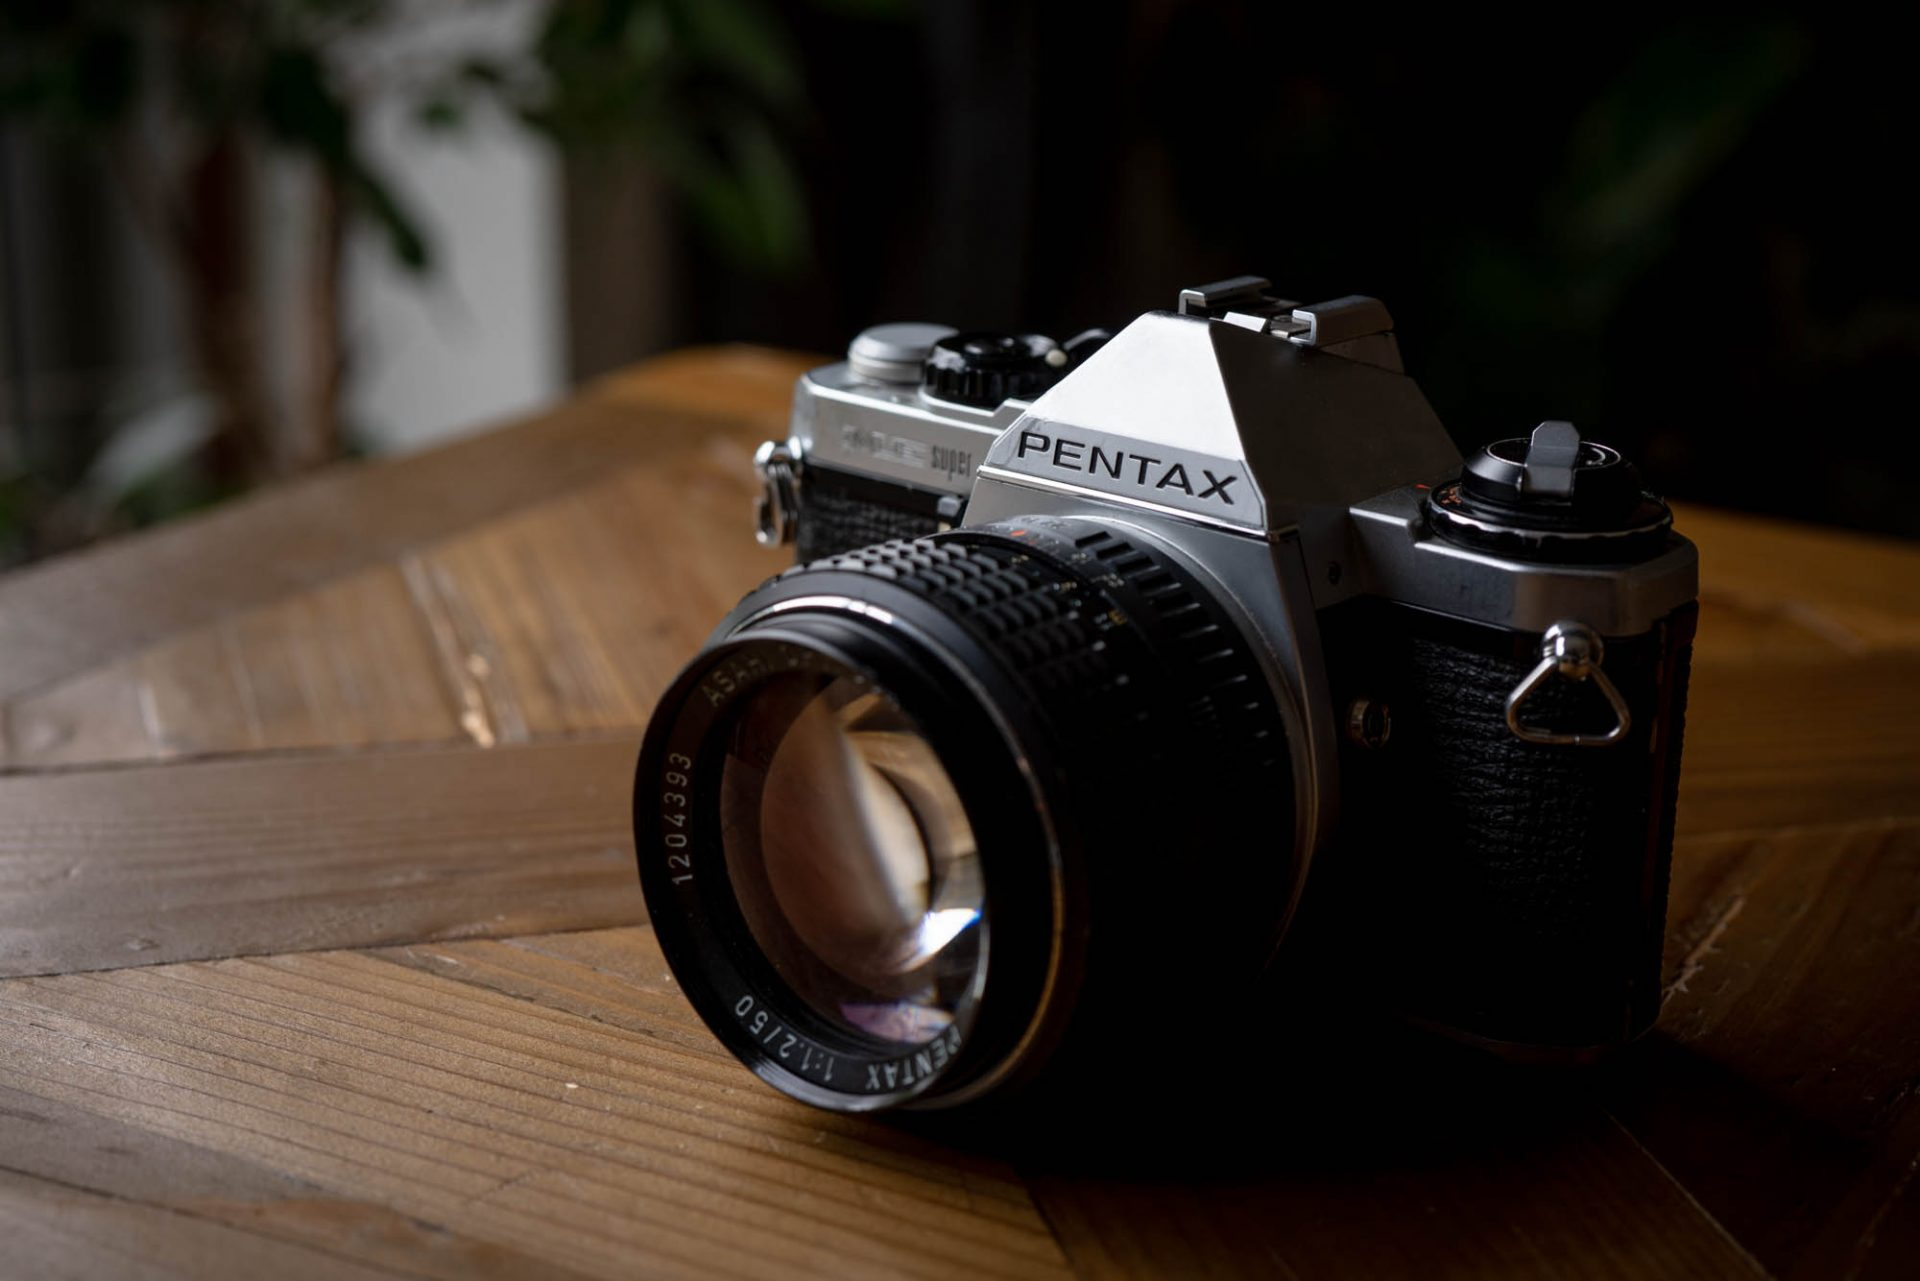 Pentax ME Super 50mm 1.2